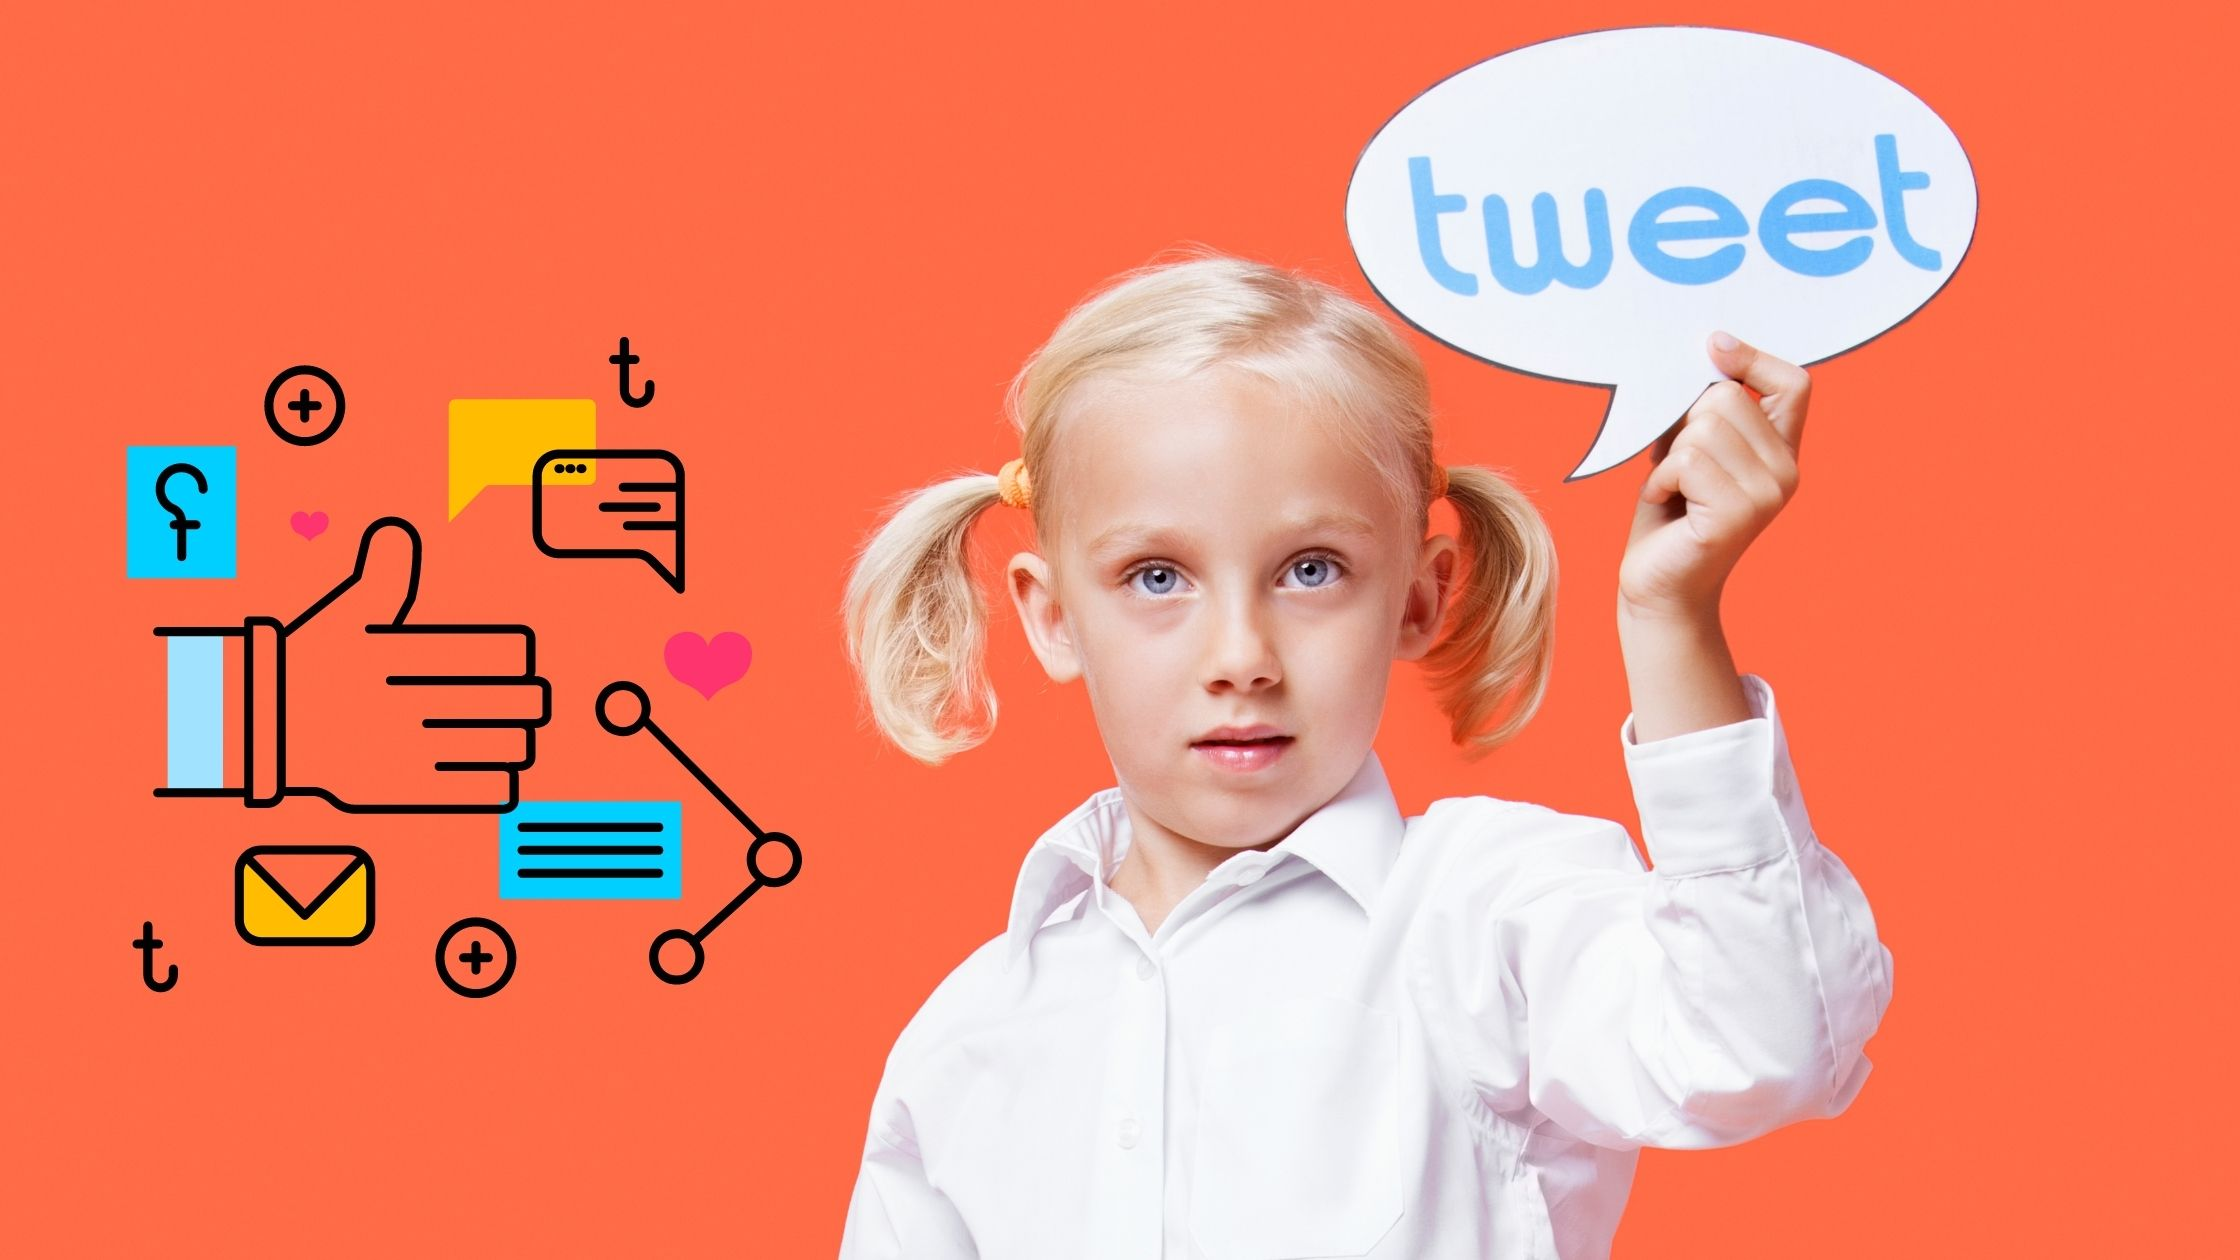 About Twitter trends in marketing campaigns